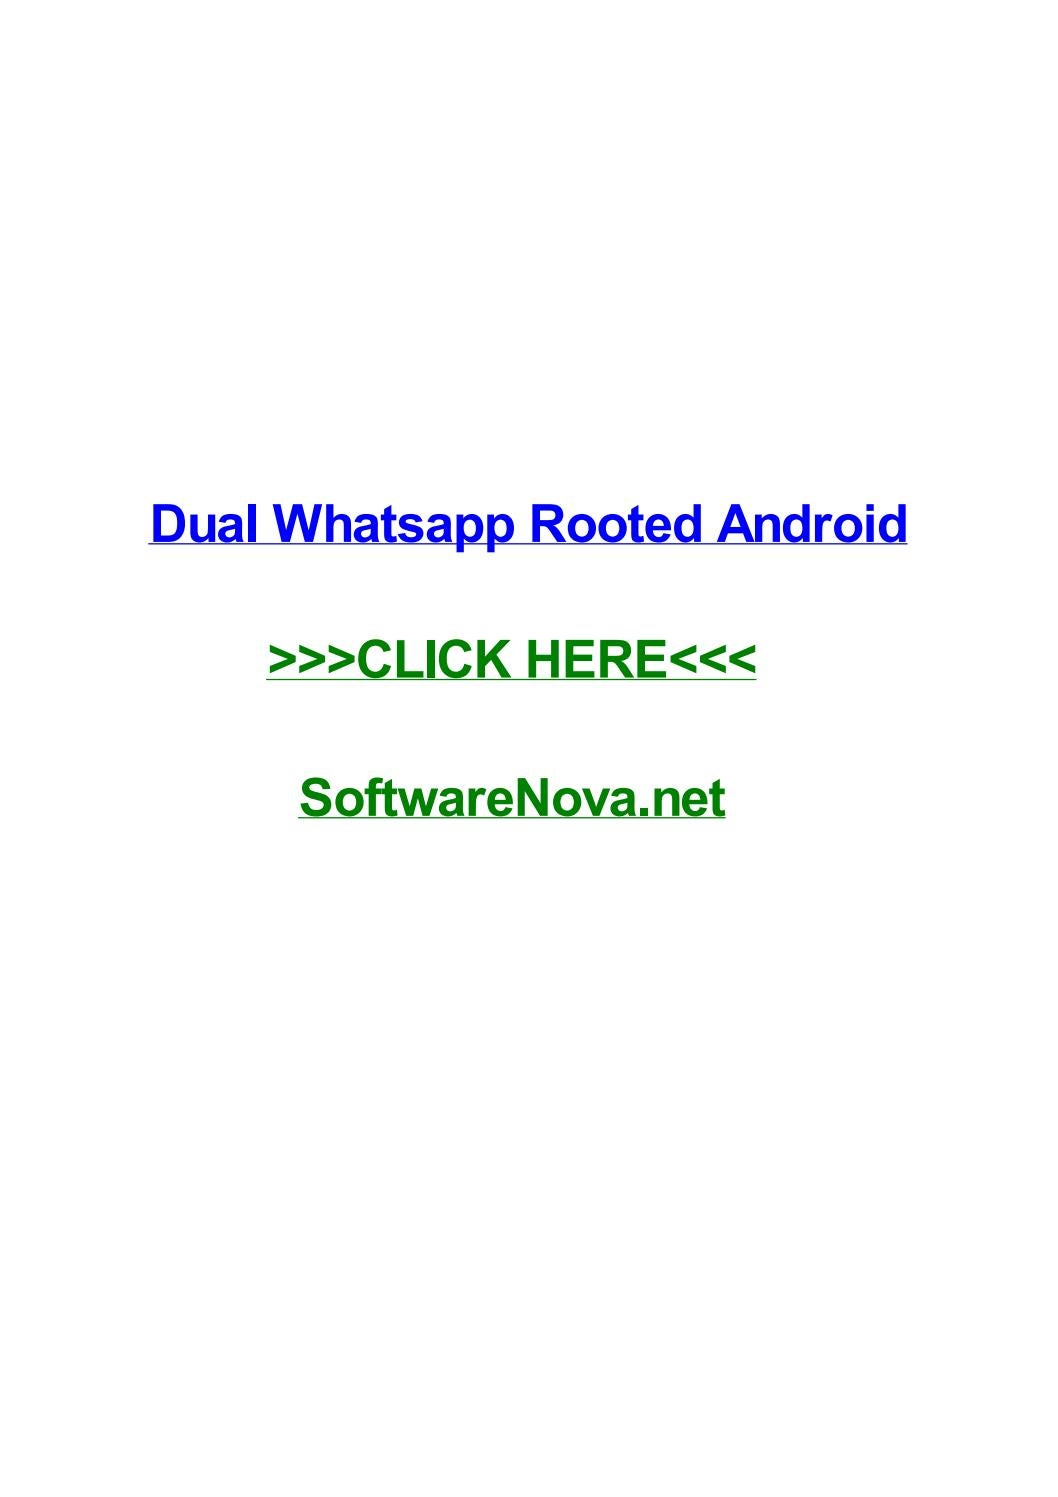 Dual whatsapp rooted android by tashayoth - issuu